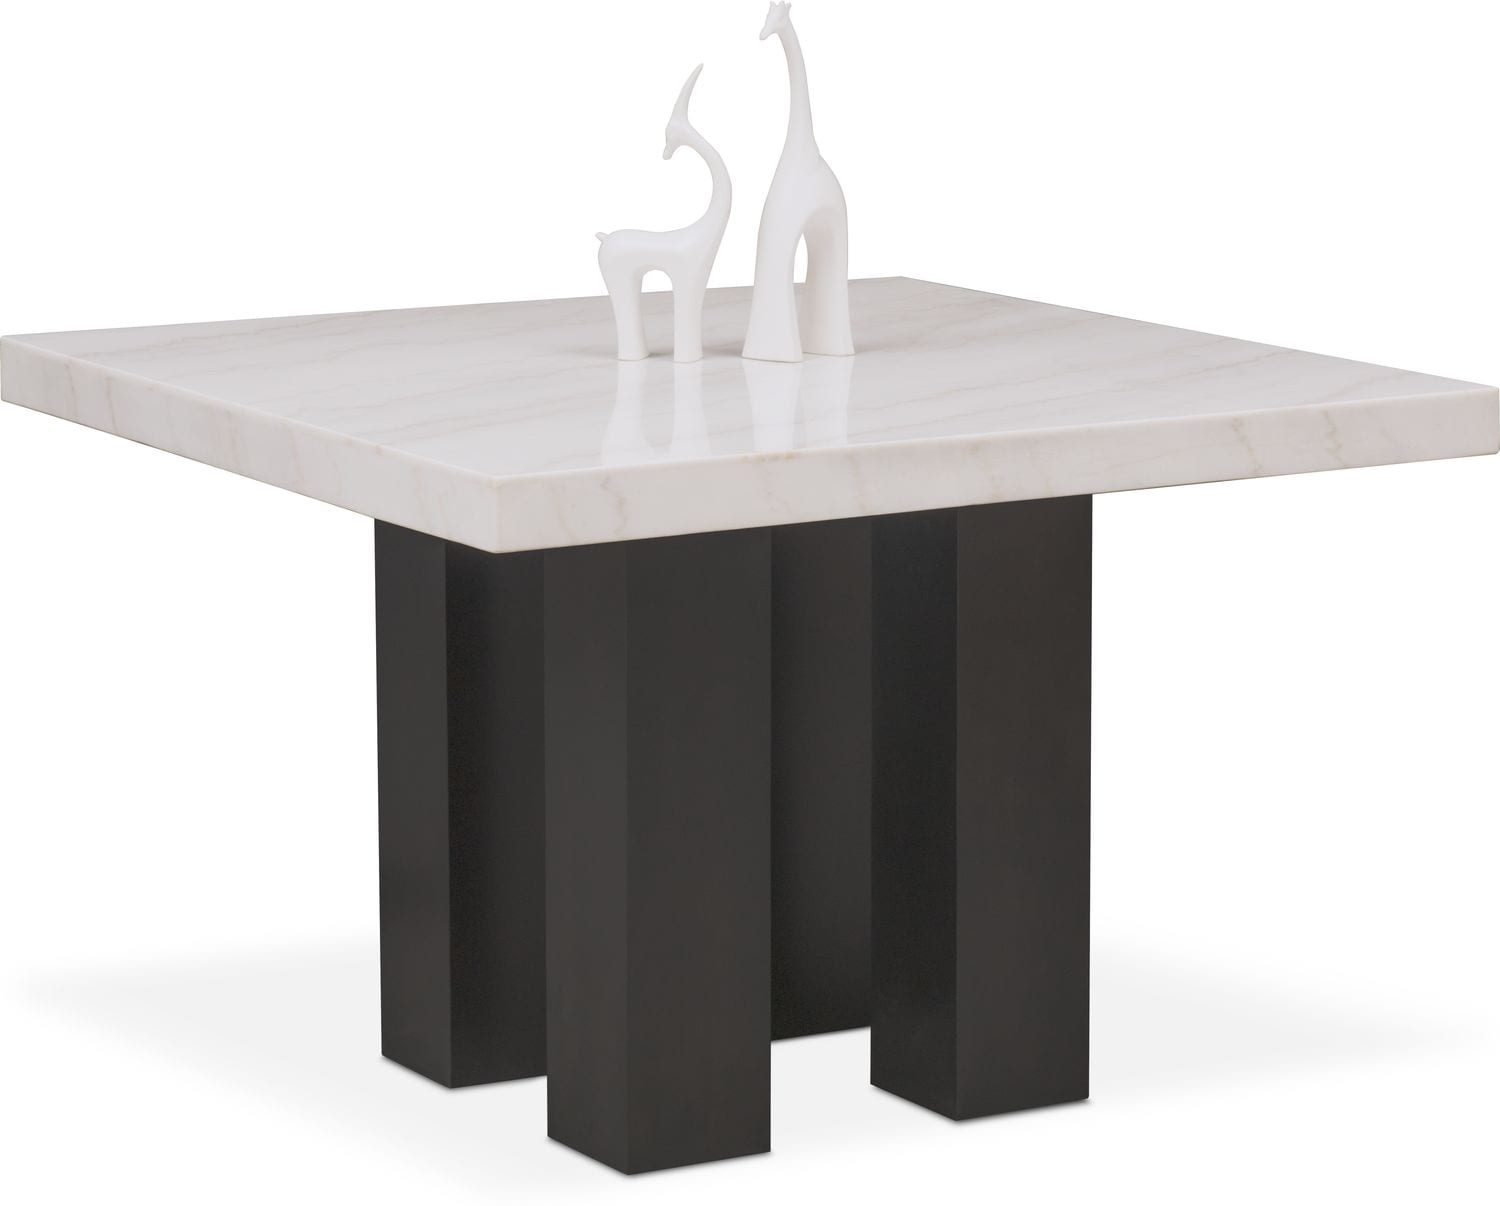 Dining Room Furniture - Artemis Counter-Height Dining Table - Marble ...  sc 1 st  Value City Furniture & Artemis Counter-Height Dining Table - Marble | Value City Furniture ...